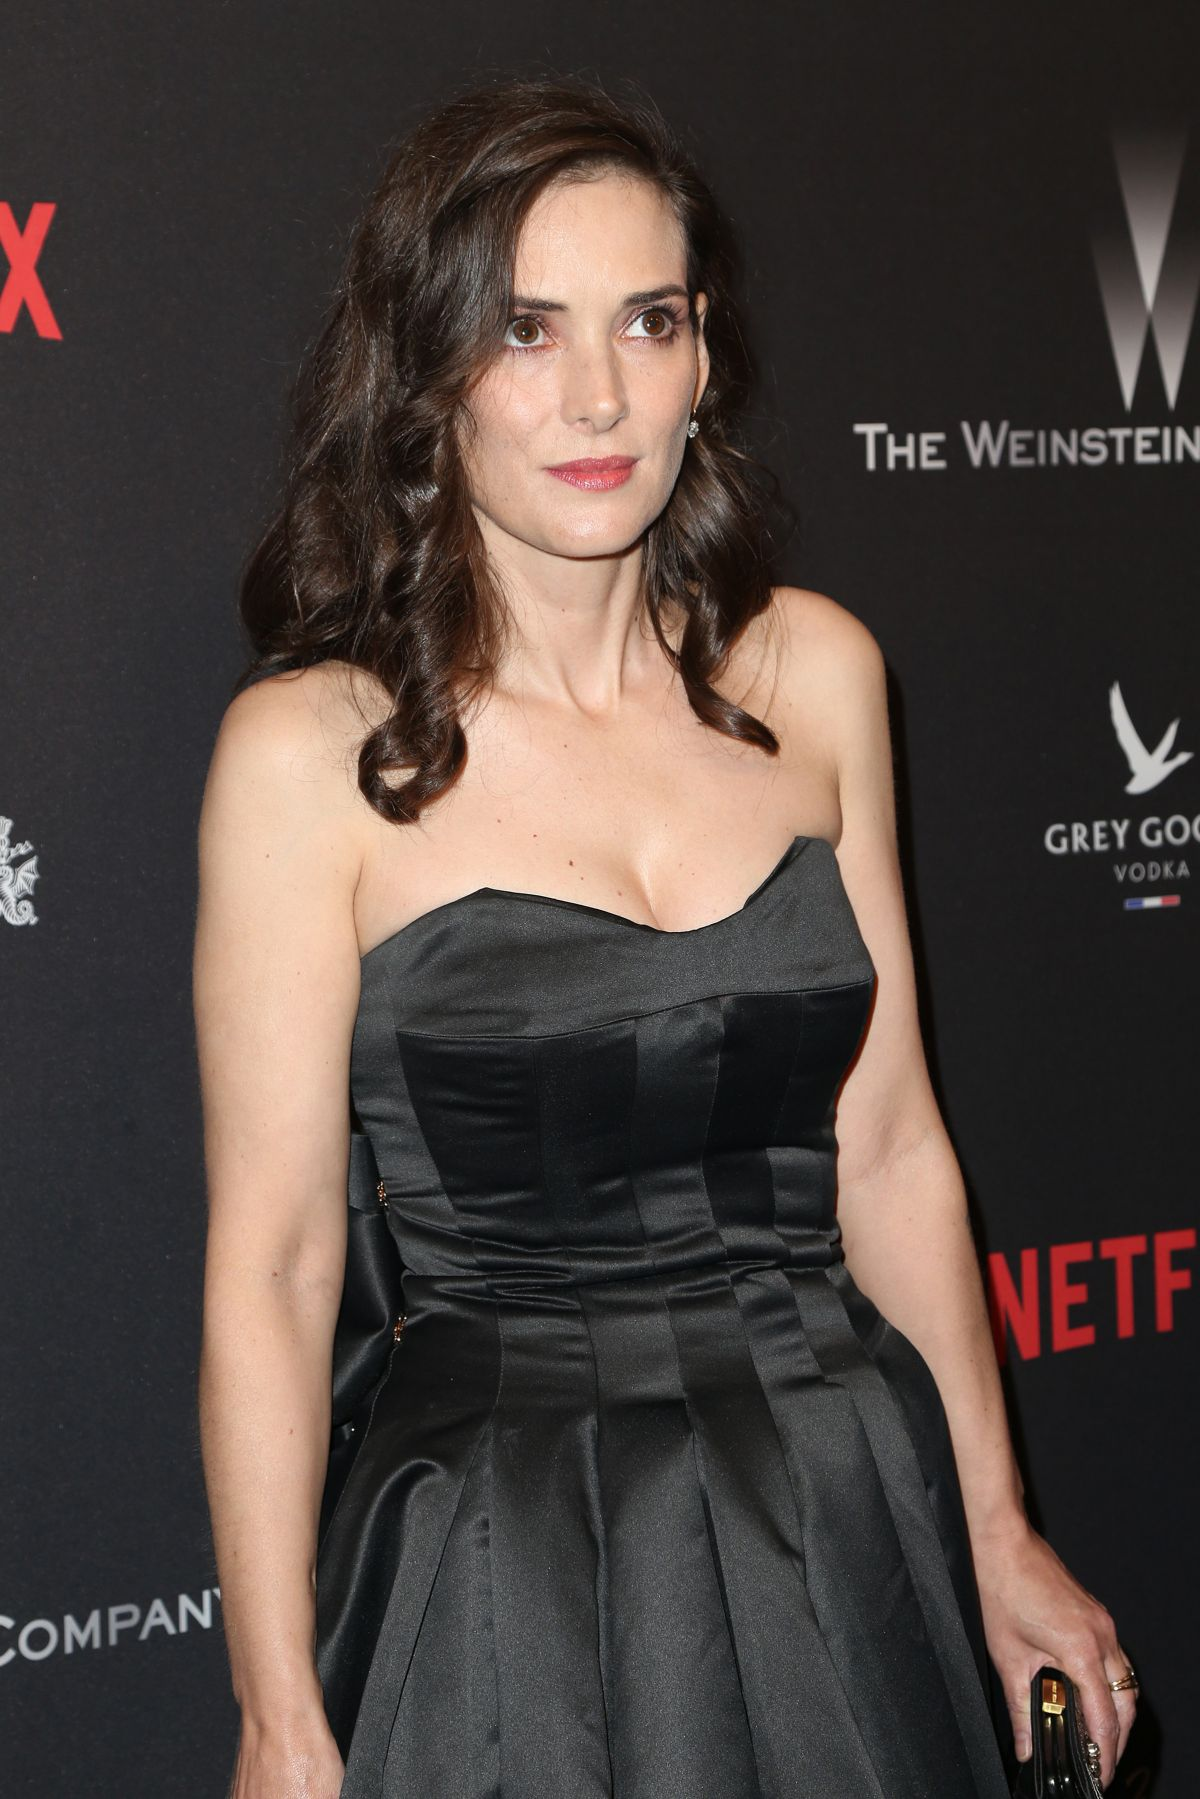 winona ryder - photo #37